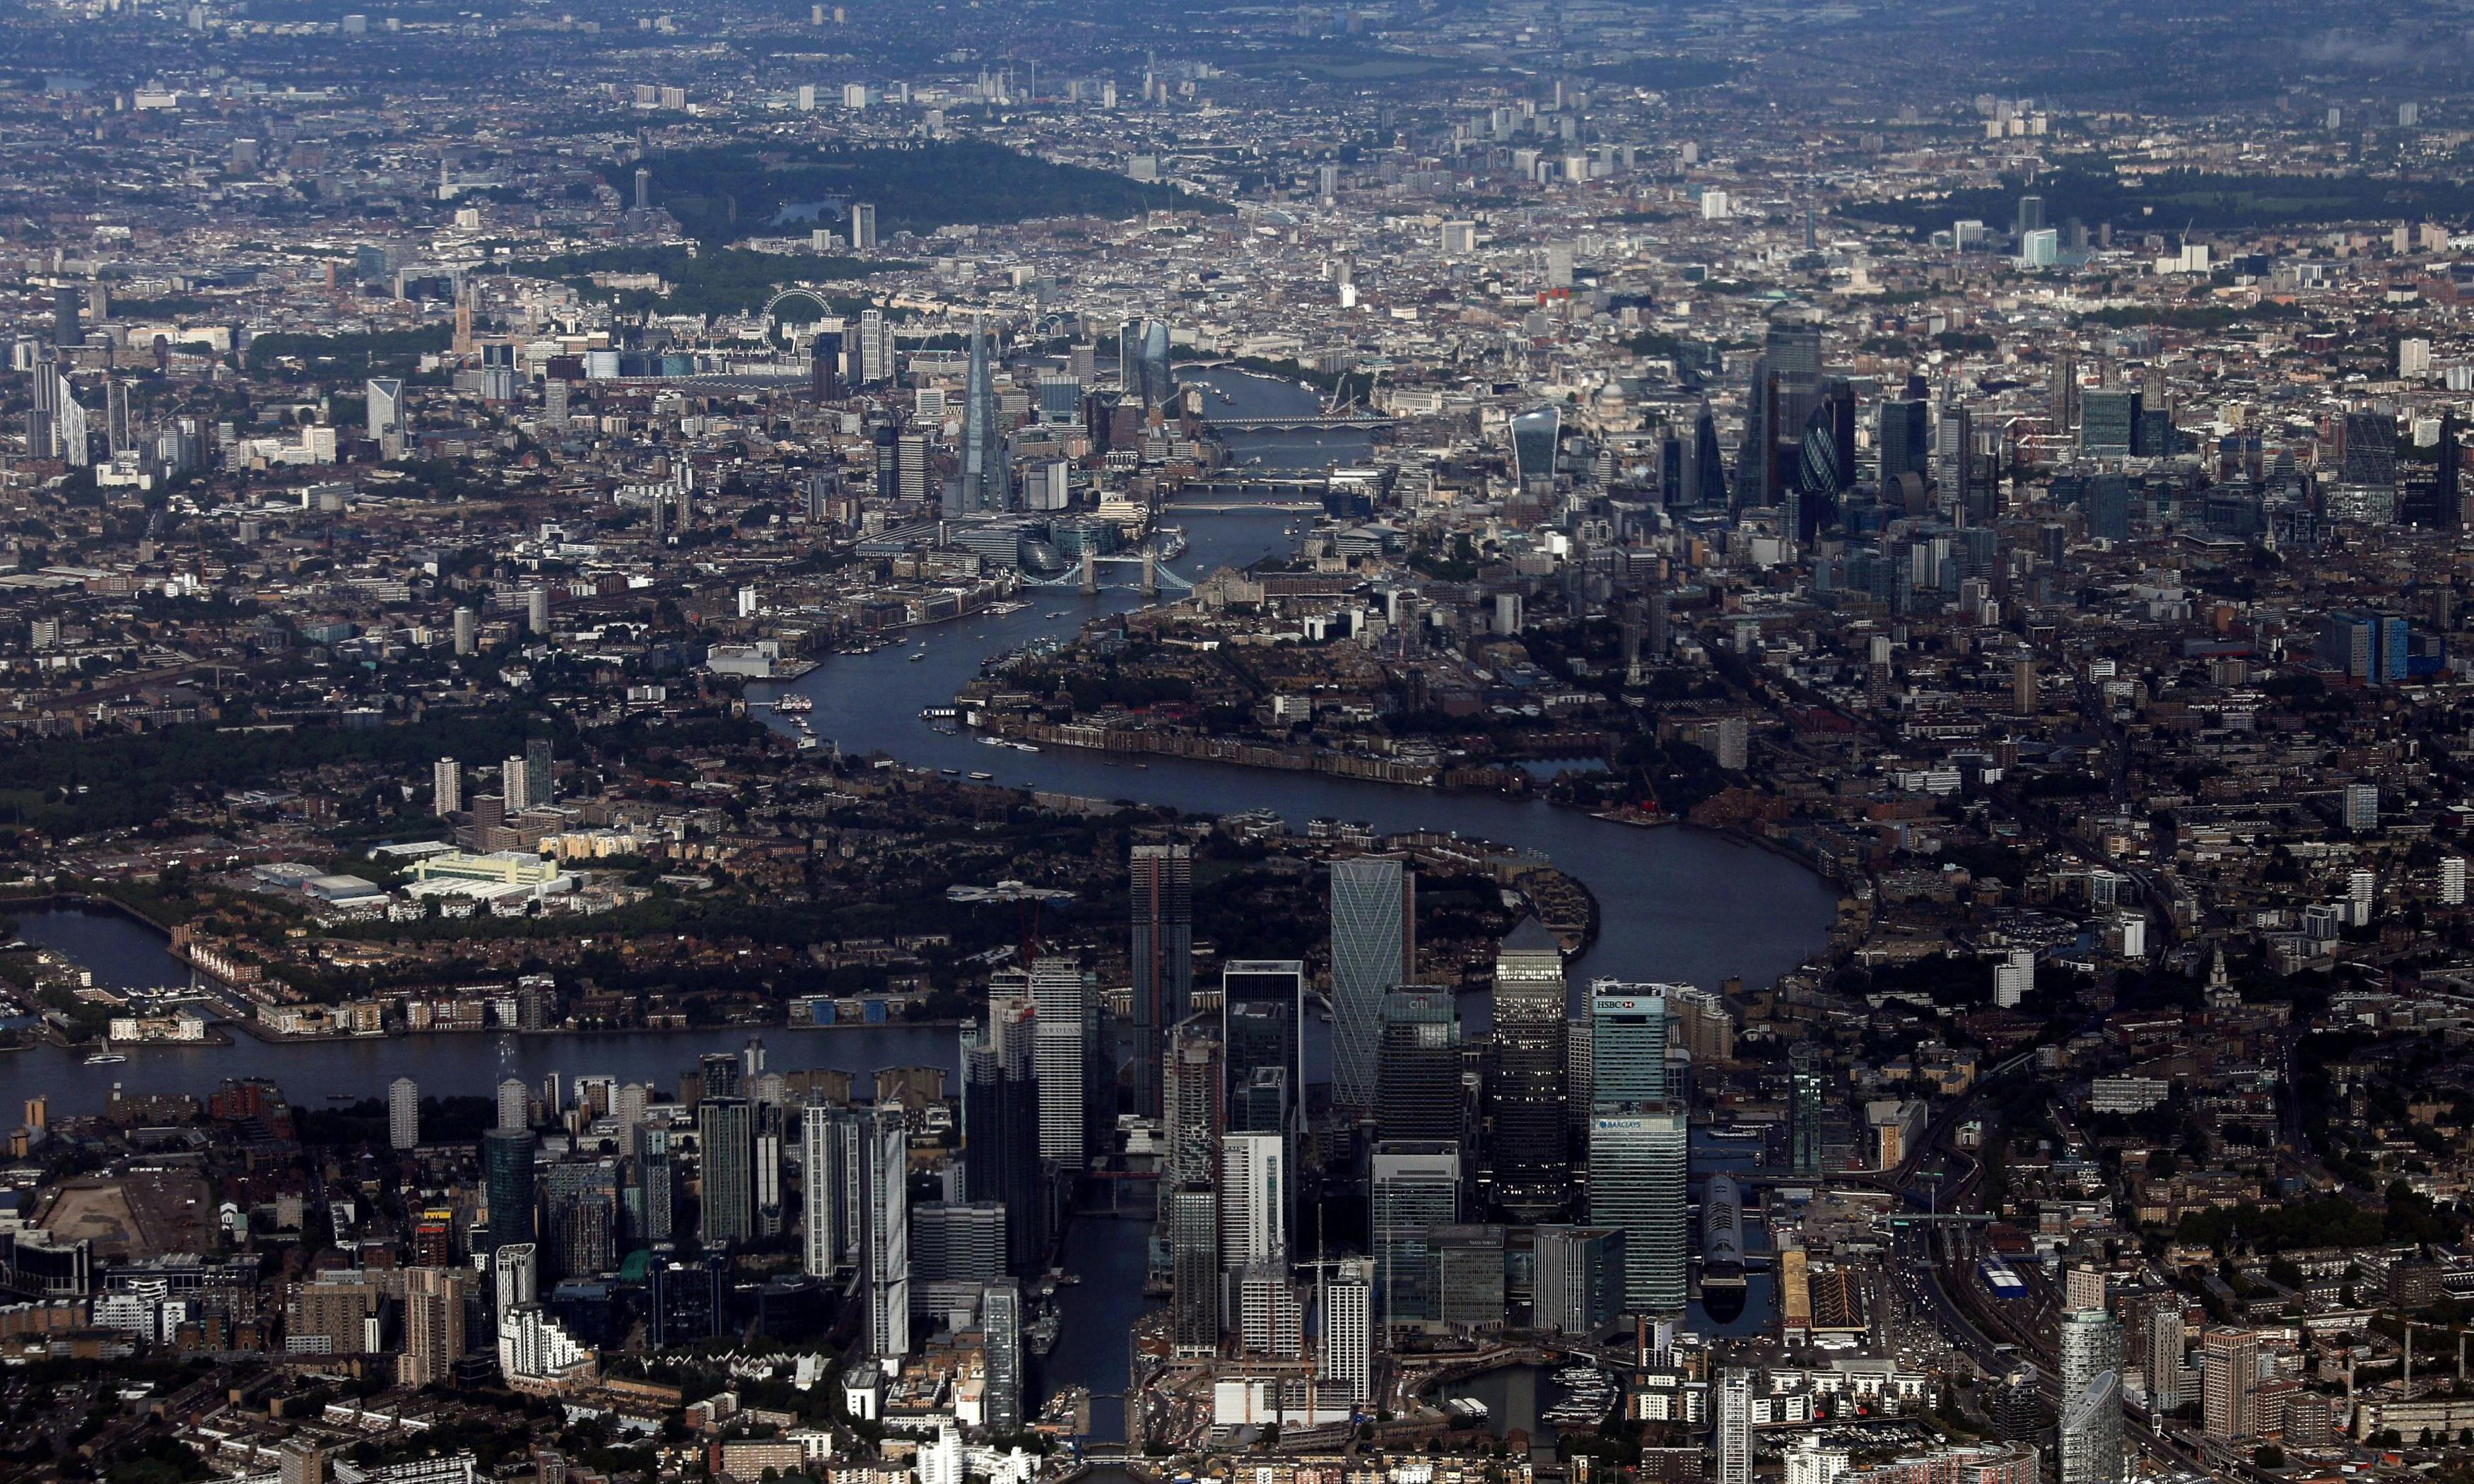 UK climbs ranking of tax havens, campaign group warns